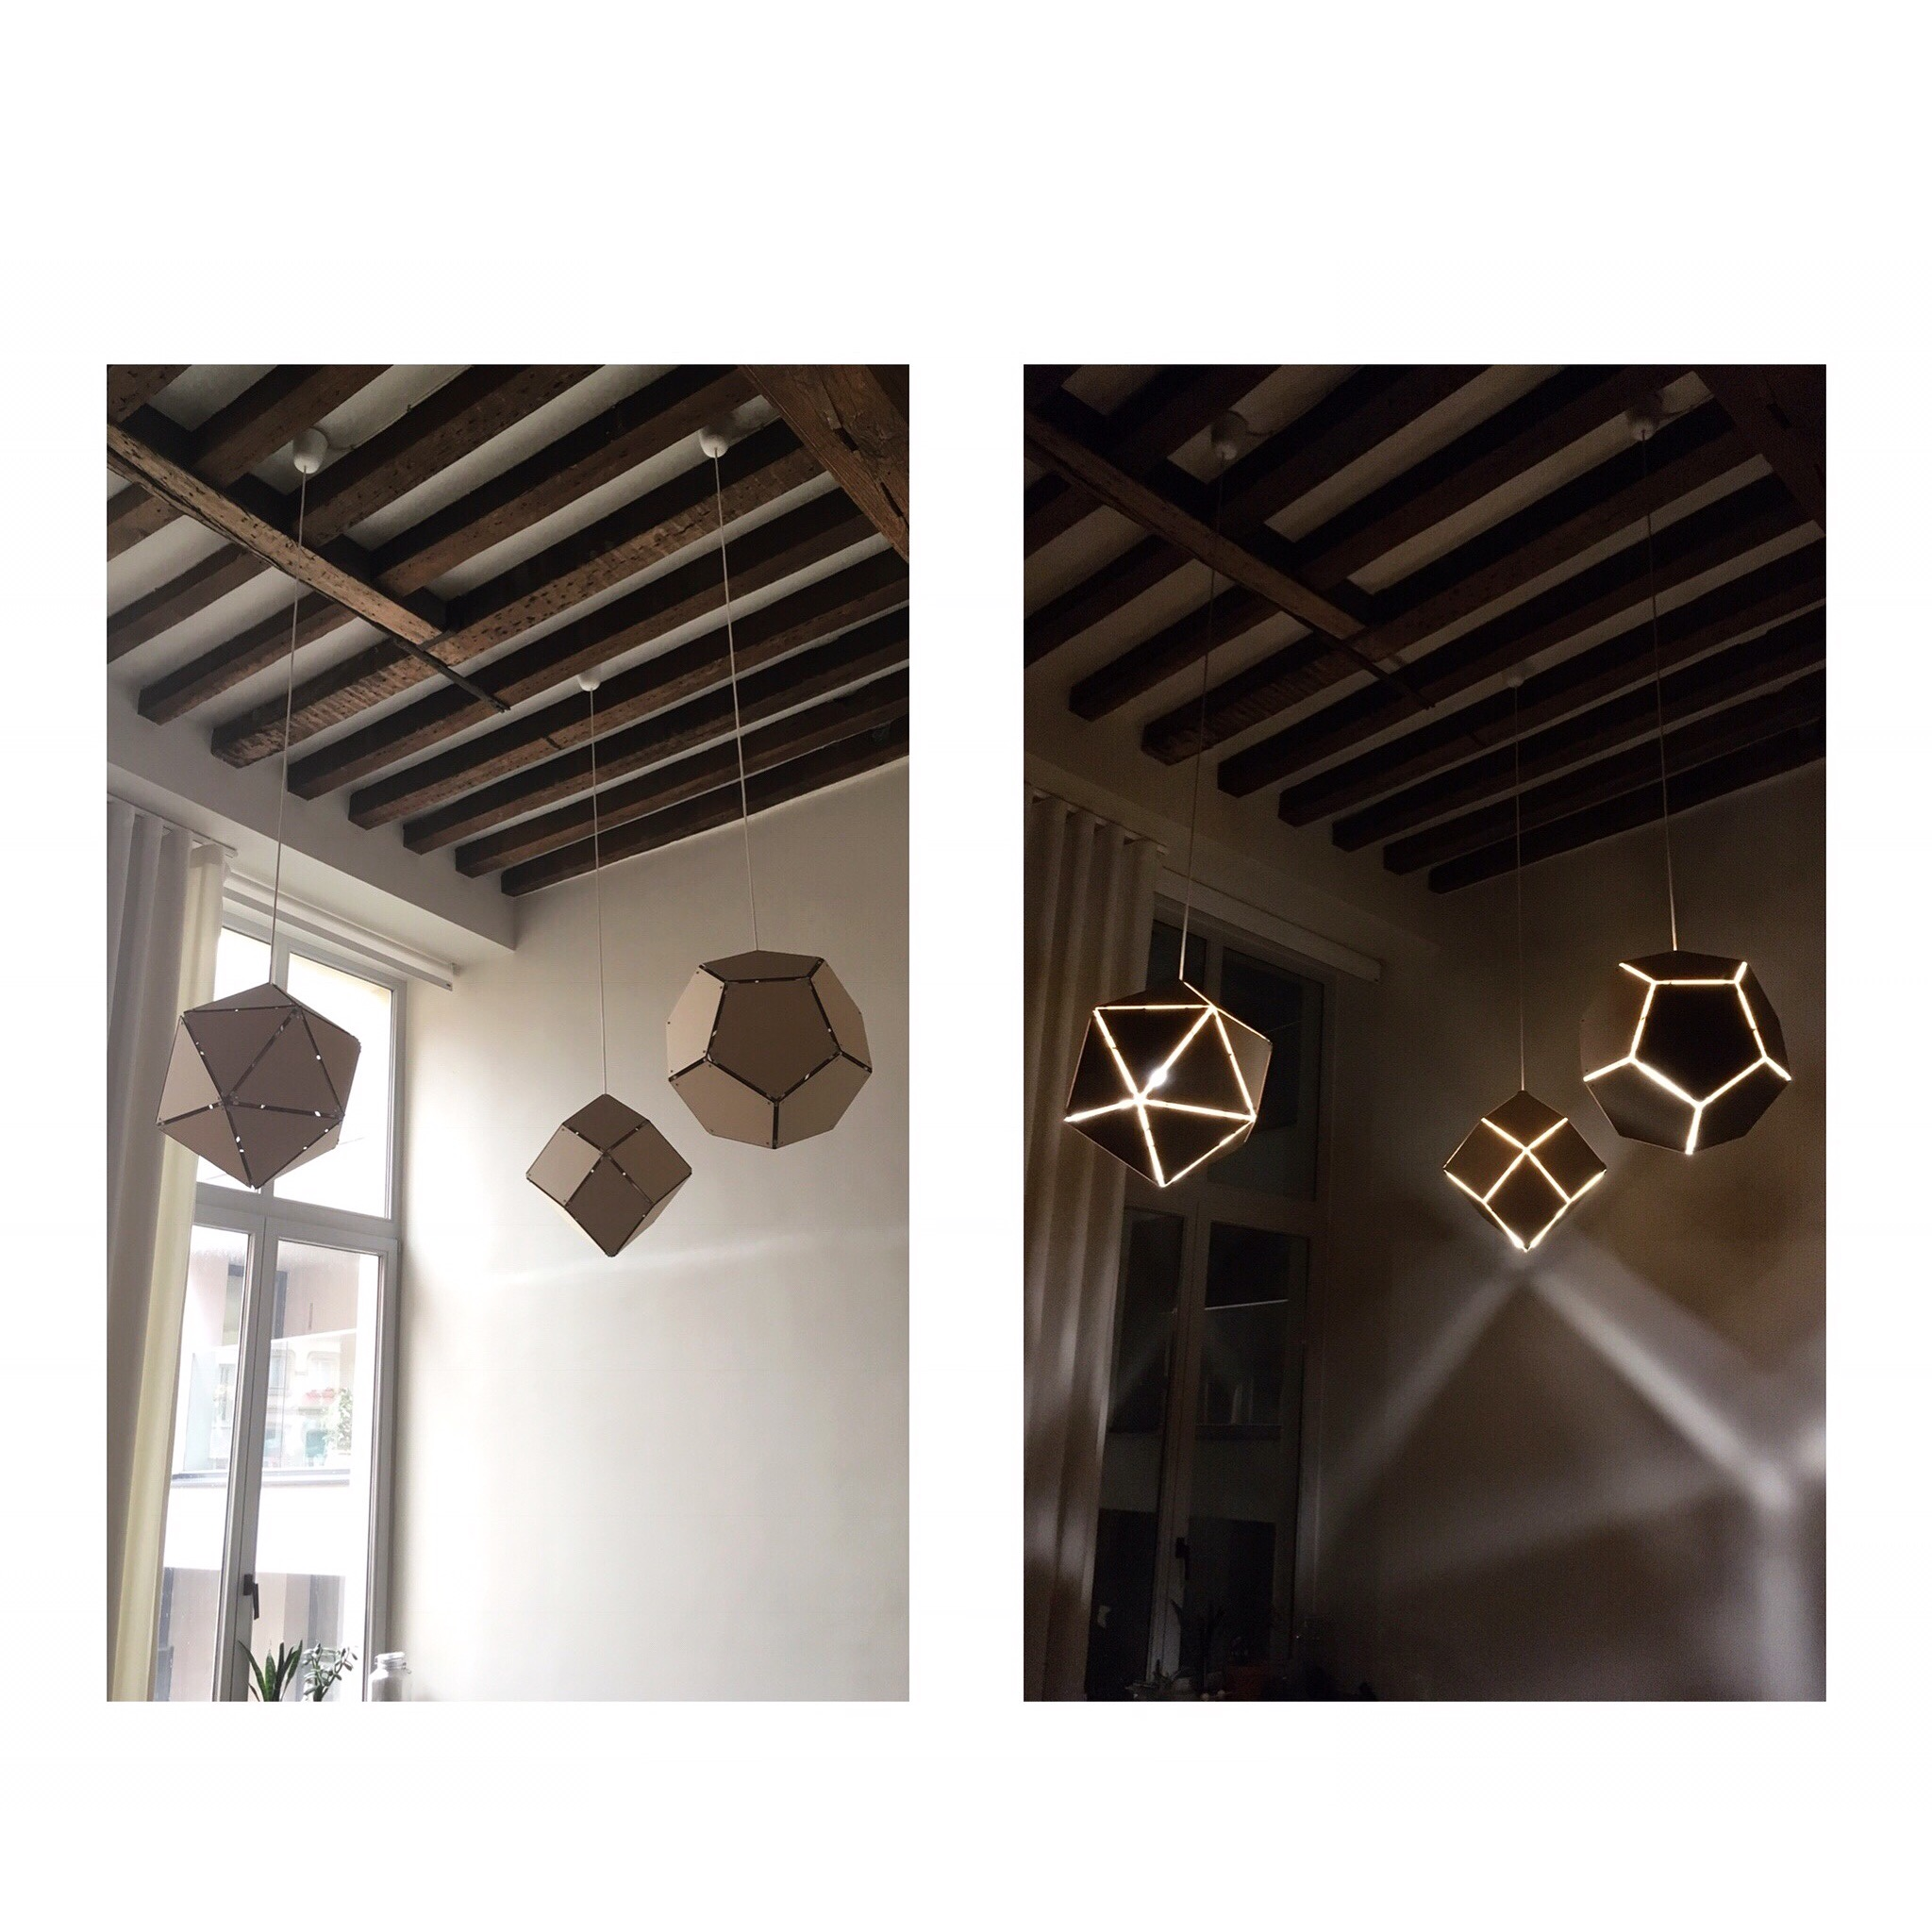 hanglampen - icosahedron, rhombic dodecahedron & dodecahedron (from left to right)